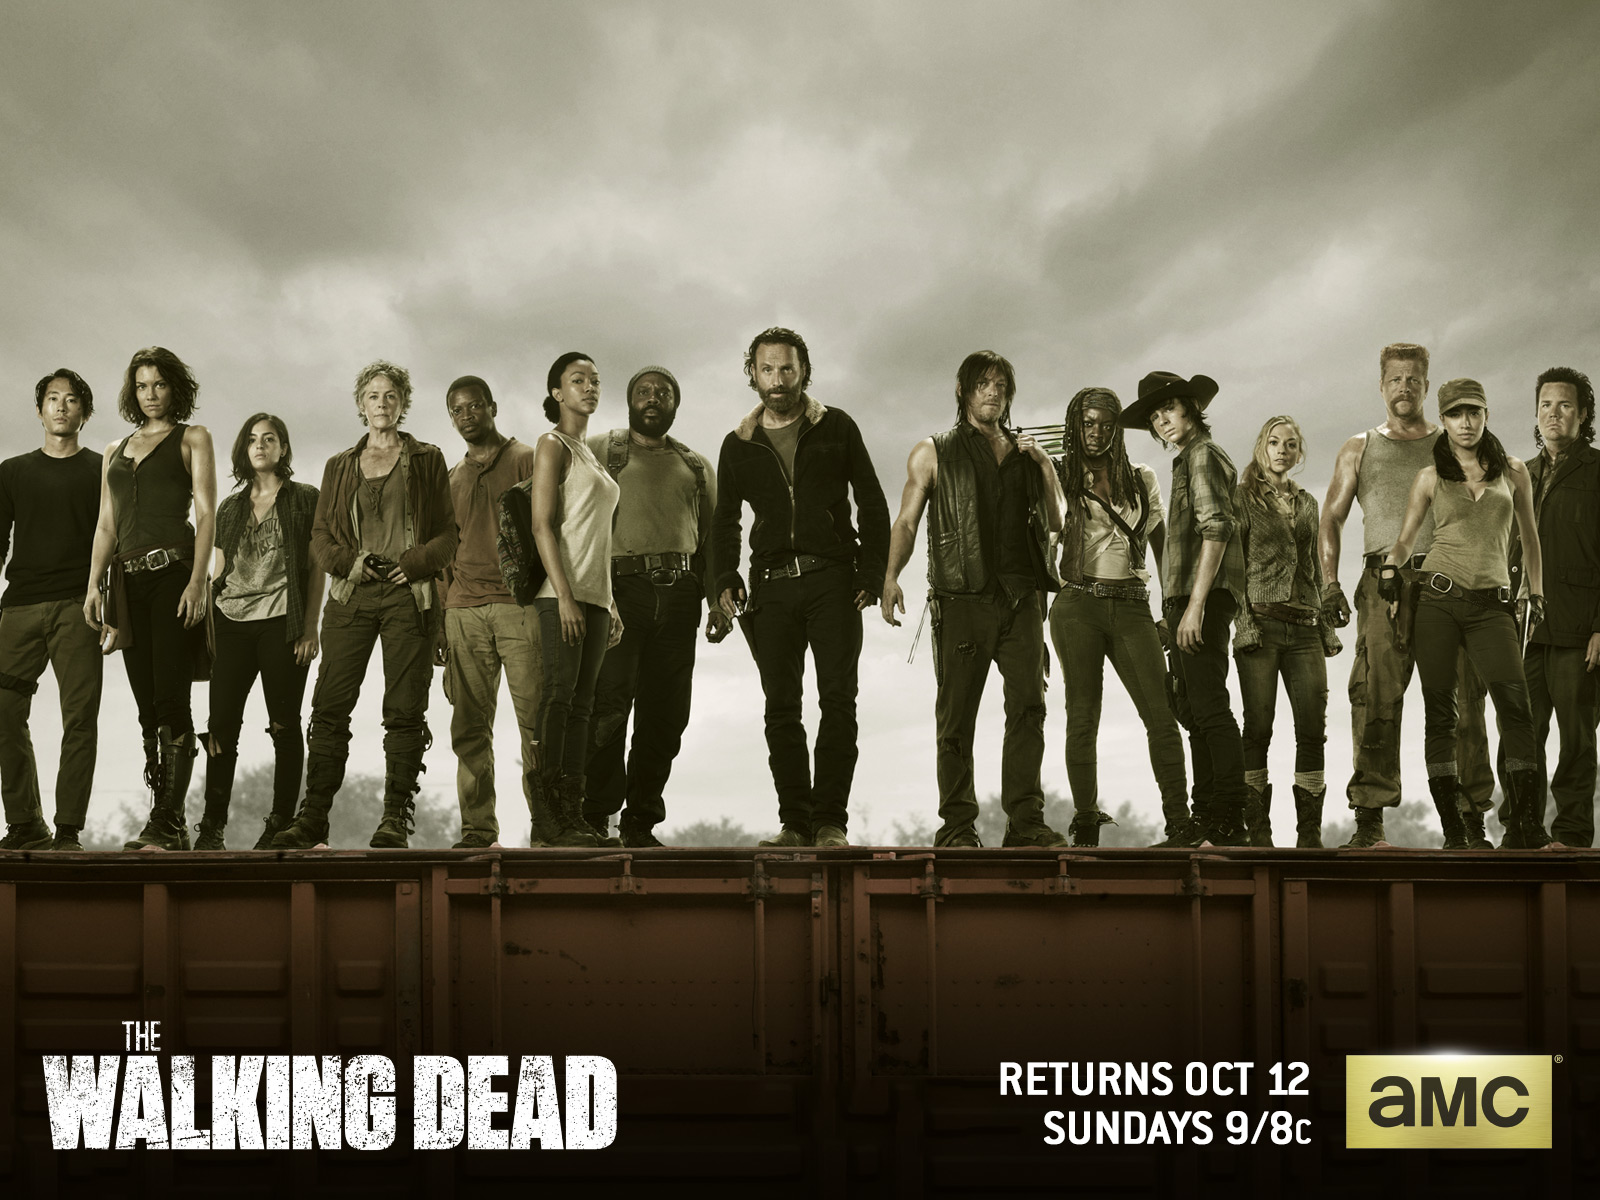 the walking dead images the walking dead hd wallpaper and background